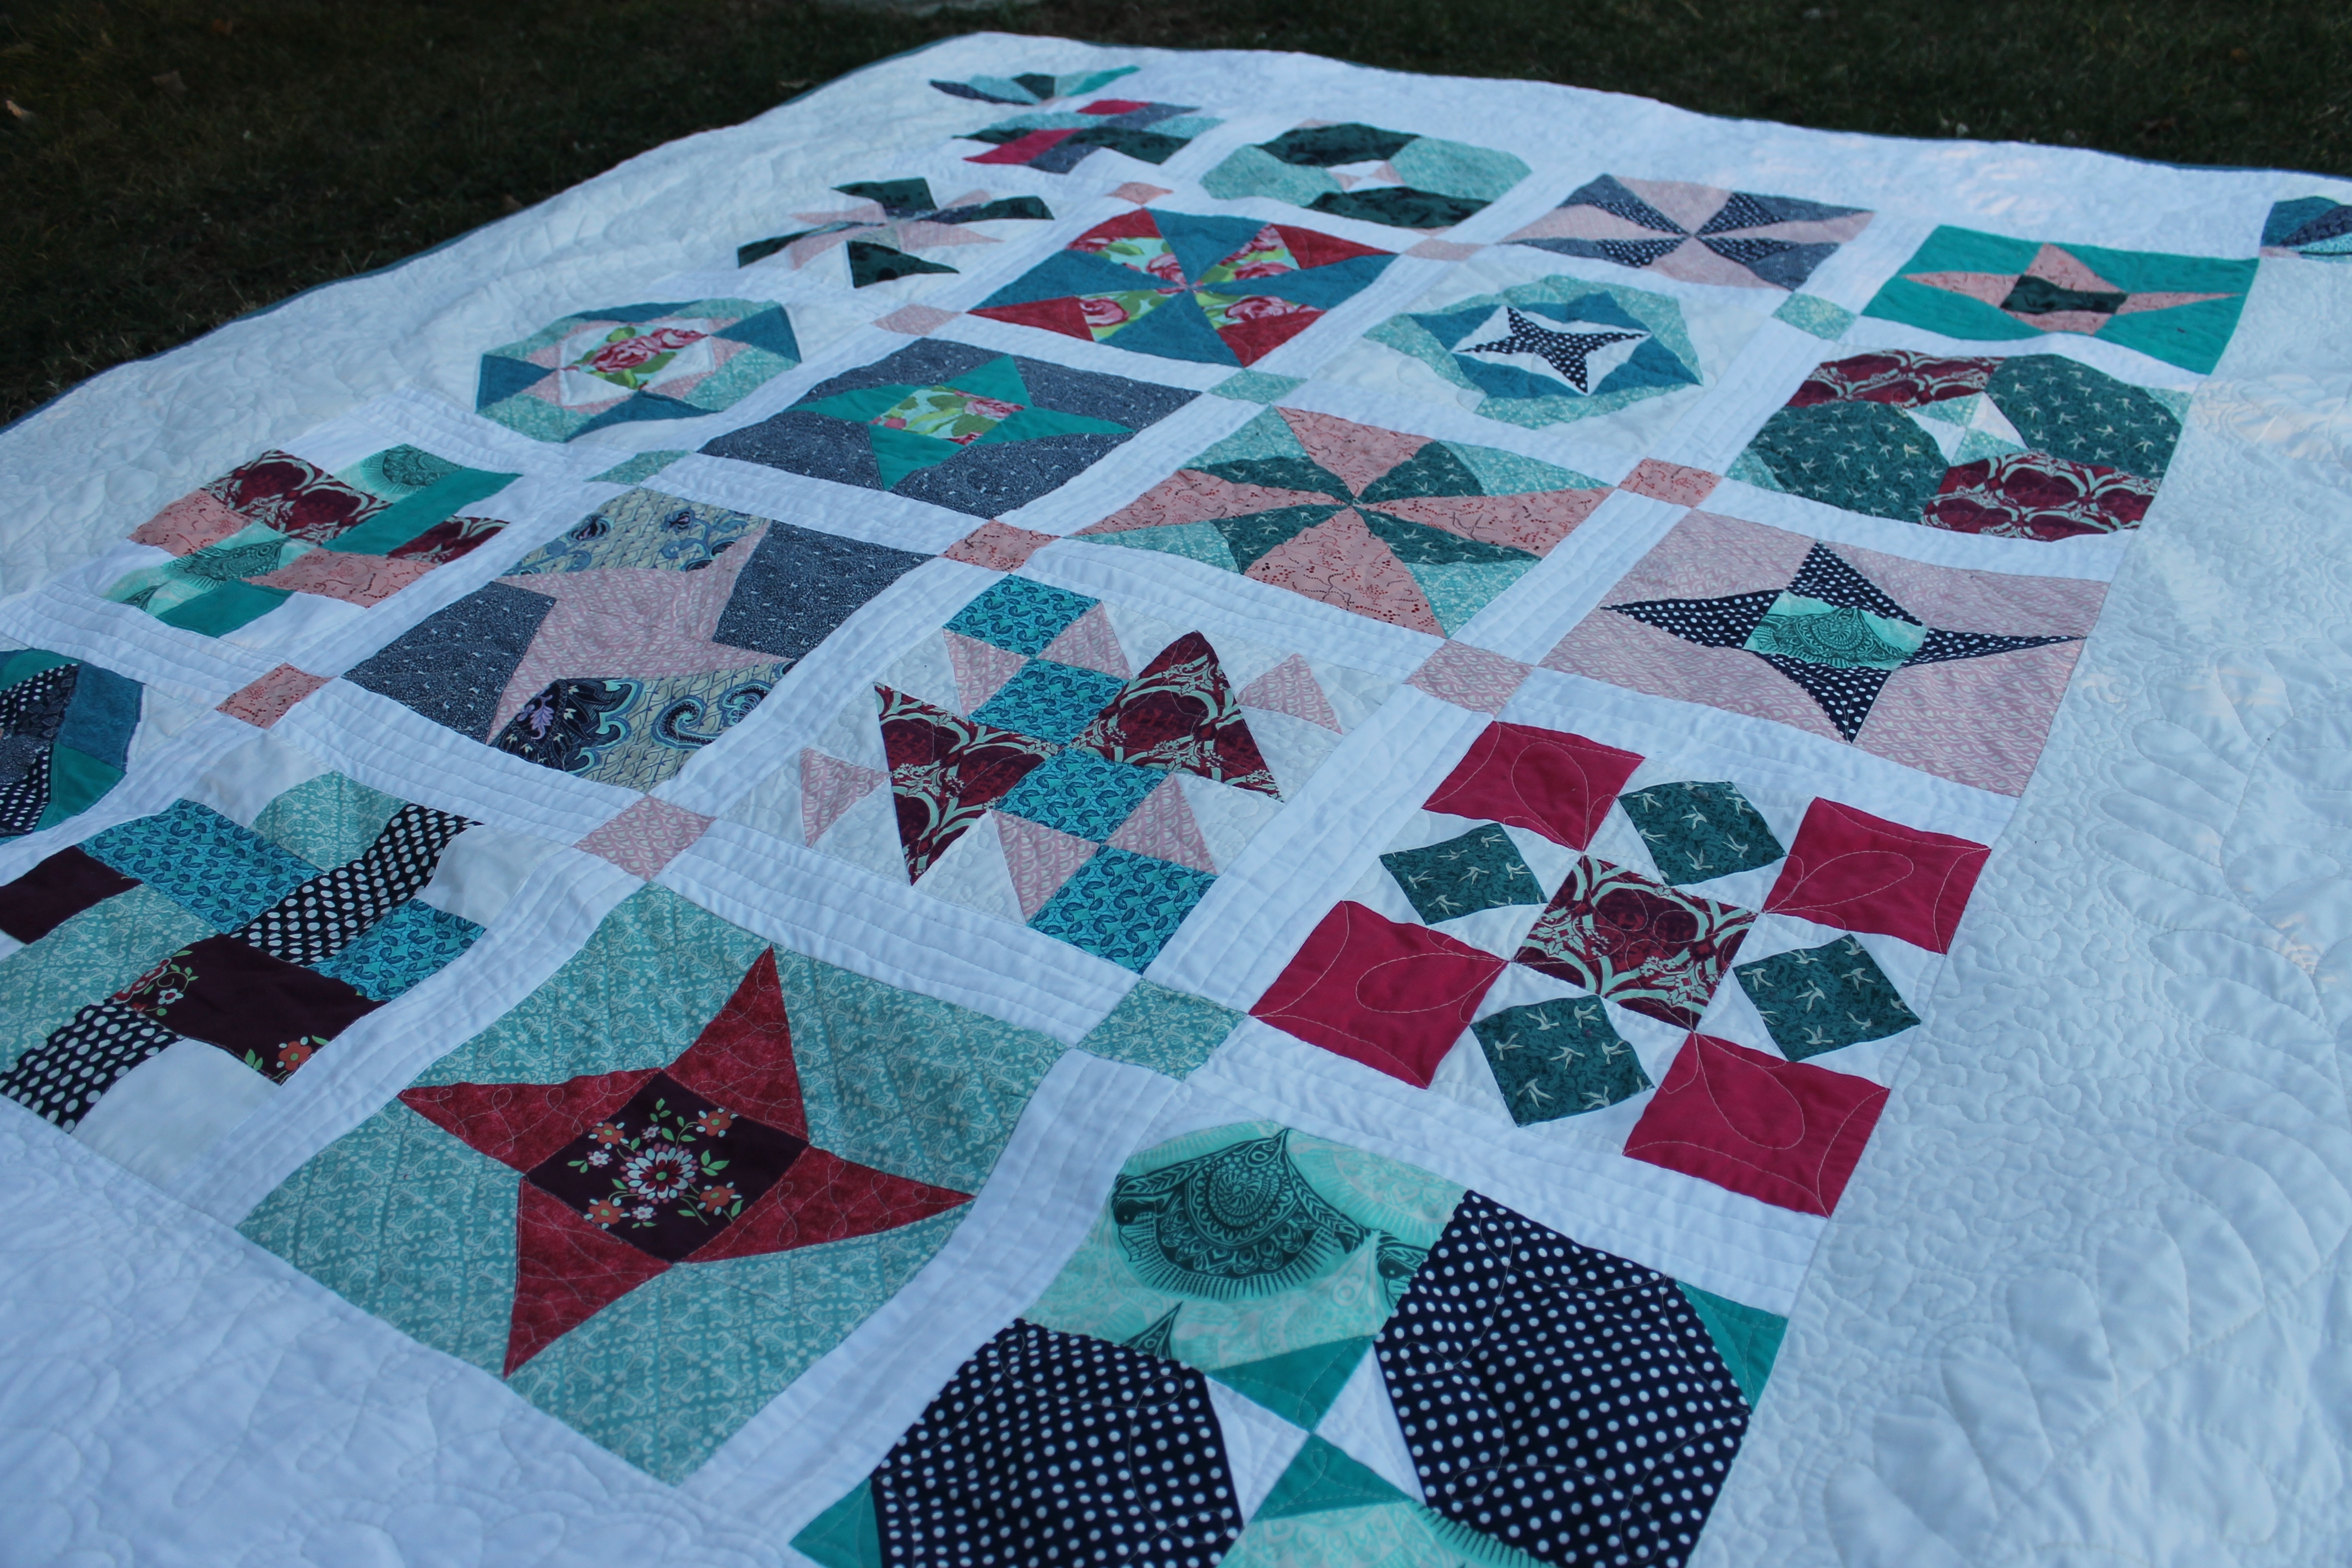 A Water Penny Sampler Quilt with turquoise and red variety of small squares on a white background